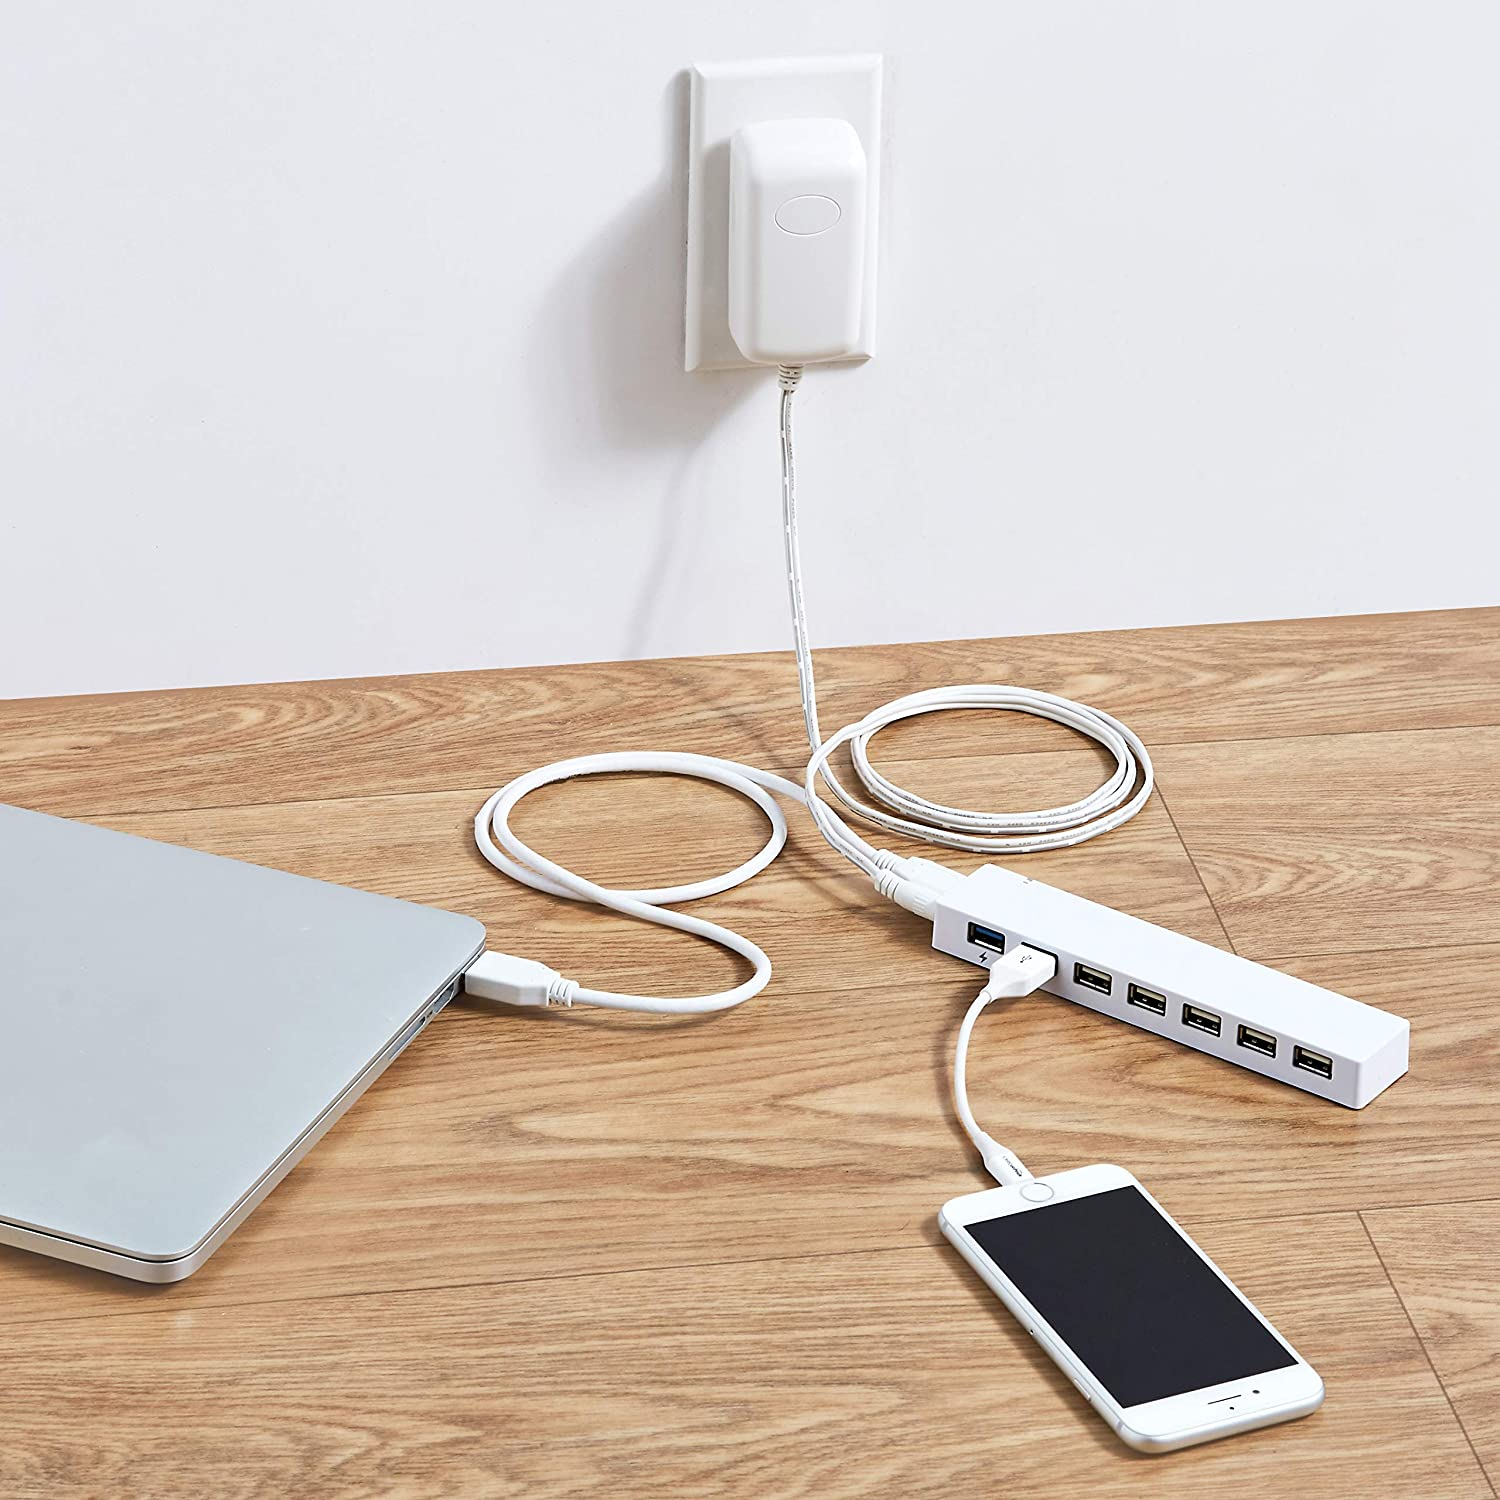 White Basics Slim High-Speed 10 Port USB 3.0 Hub with AC Adapter for use with Macbook iMac Mac Pro Surface Pro and more